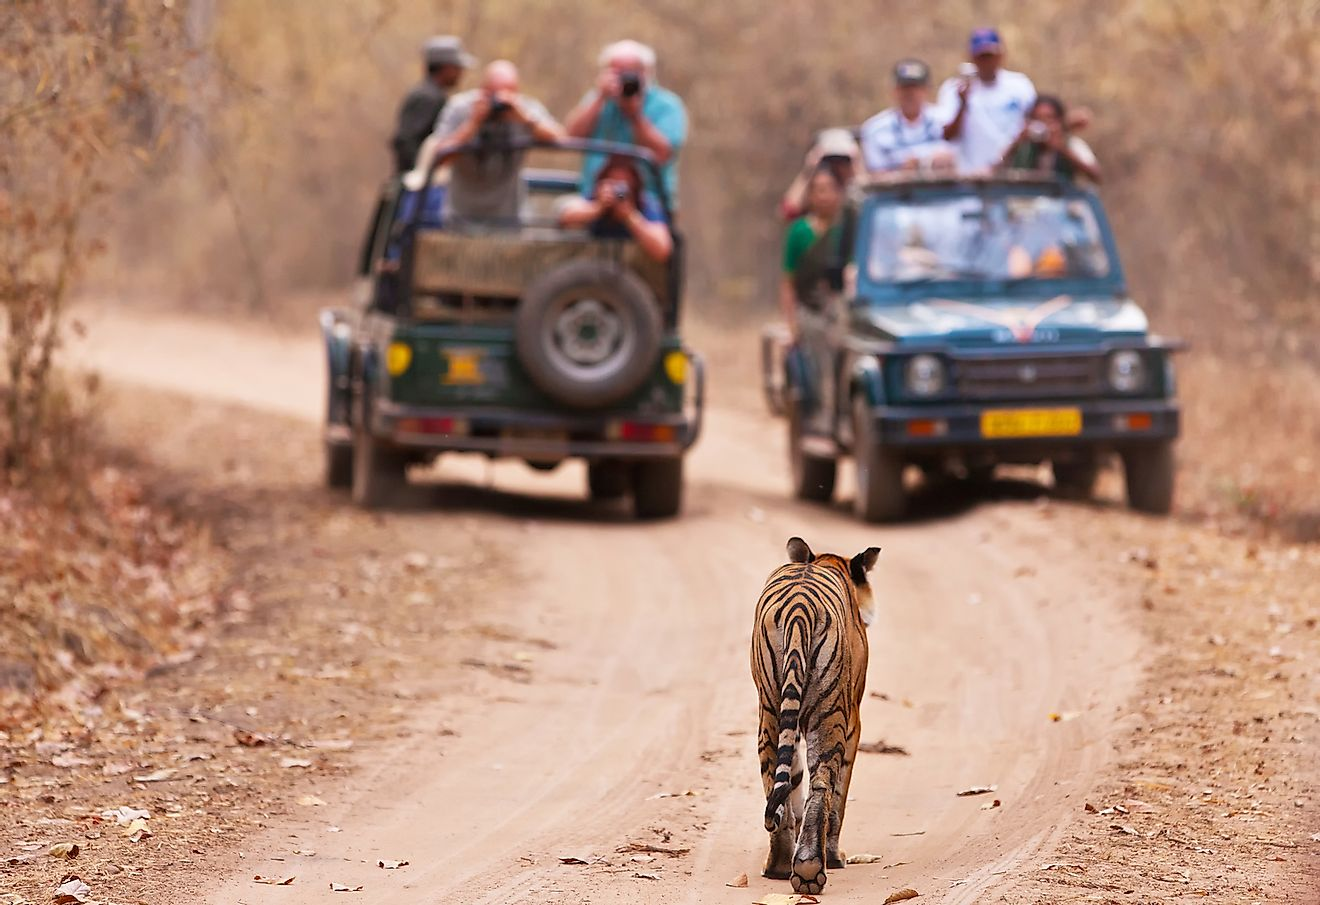 Safari vehicles with tourists observing tigers in the wild. Image credit: Travel Stock/Shutterstock.com